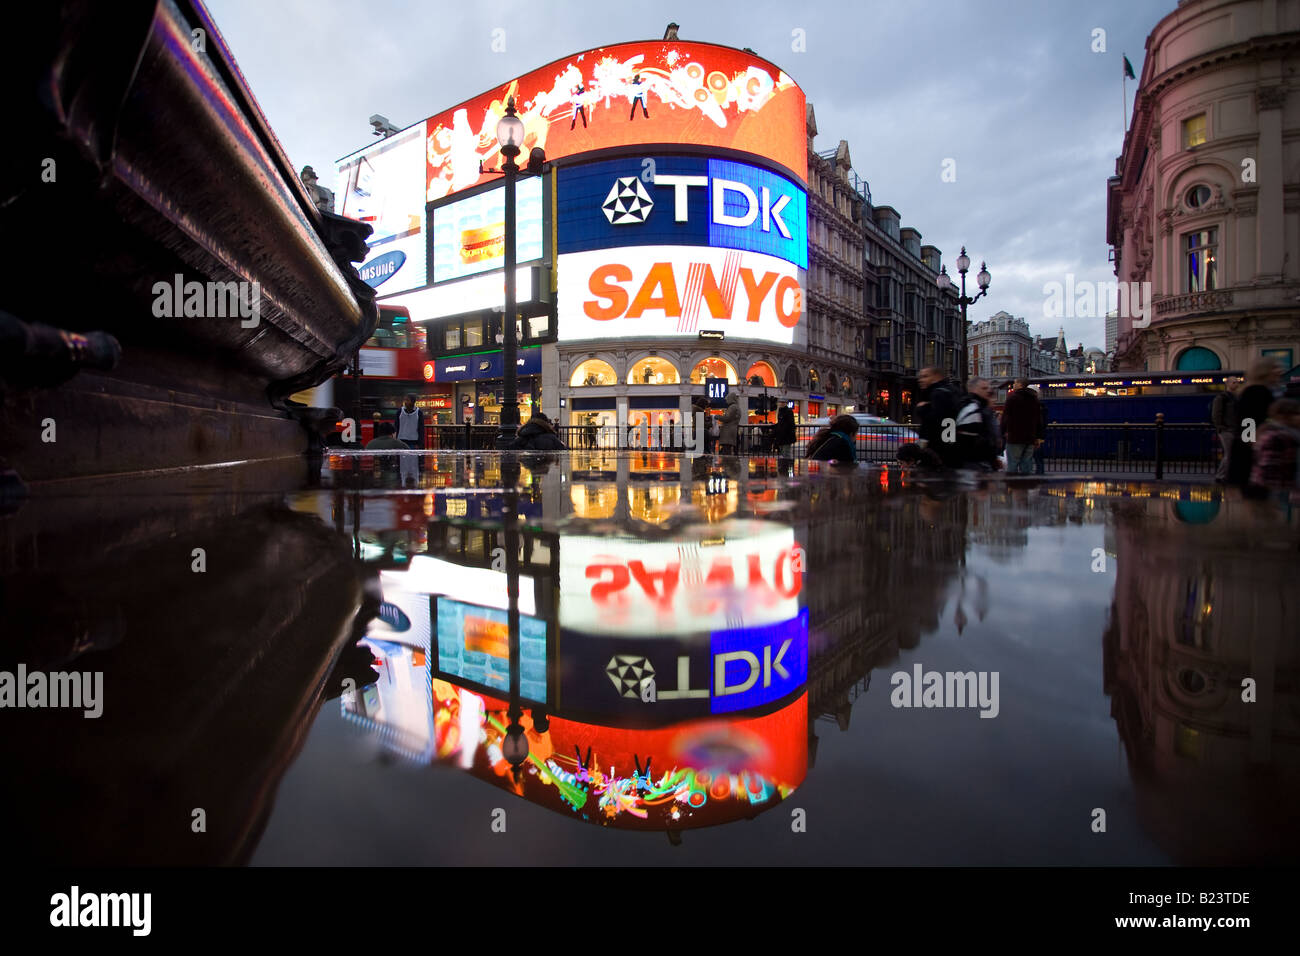 Buildings reflect in the puddles after the rain at Piccadilly Circus. - Stock Image